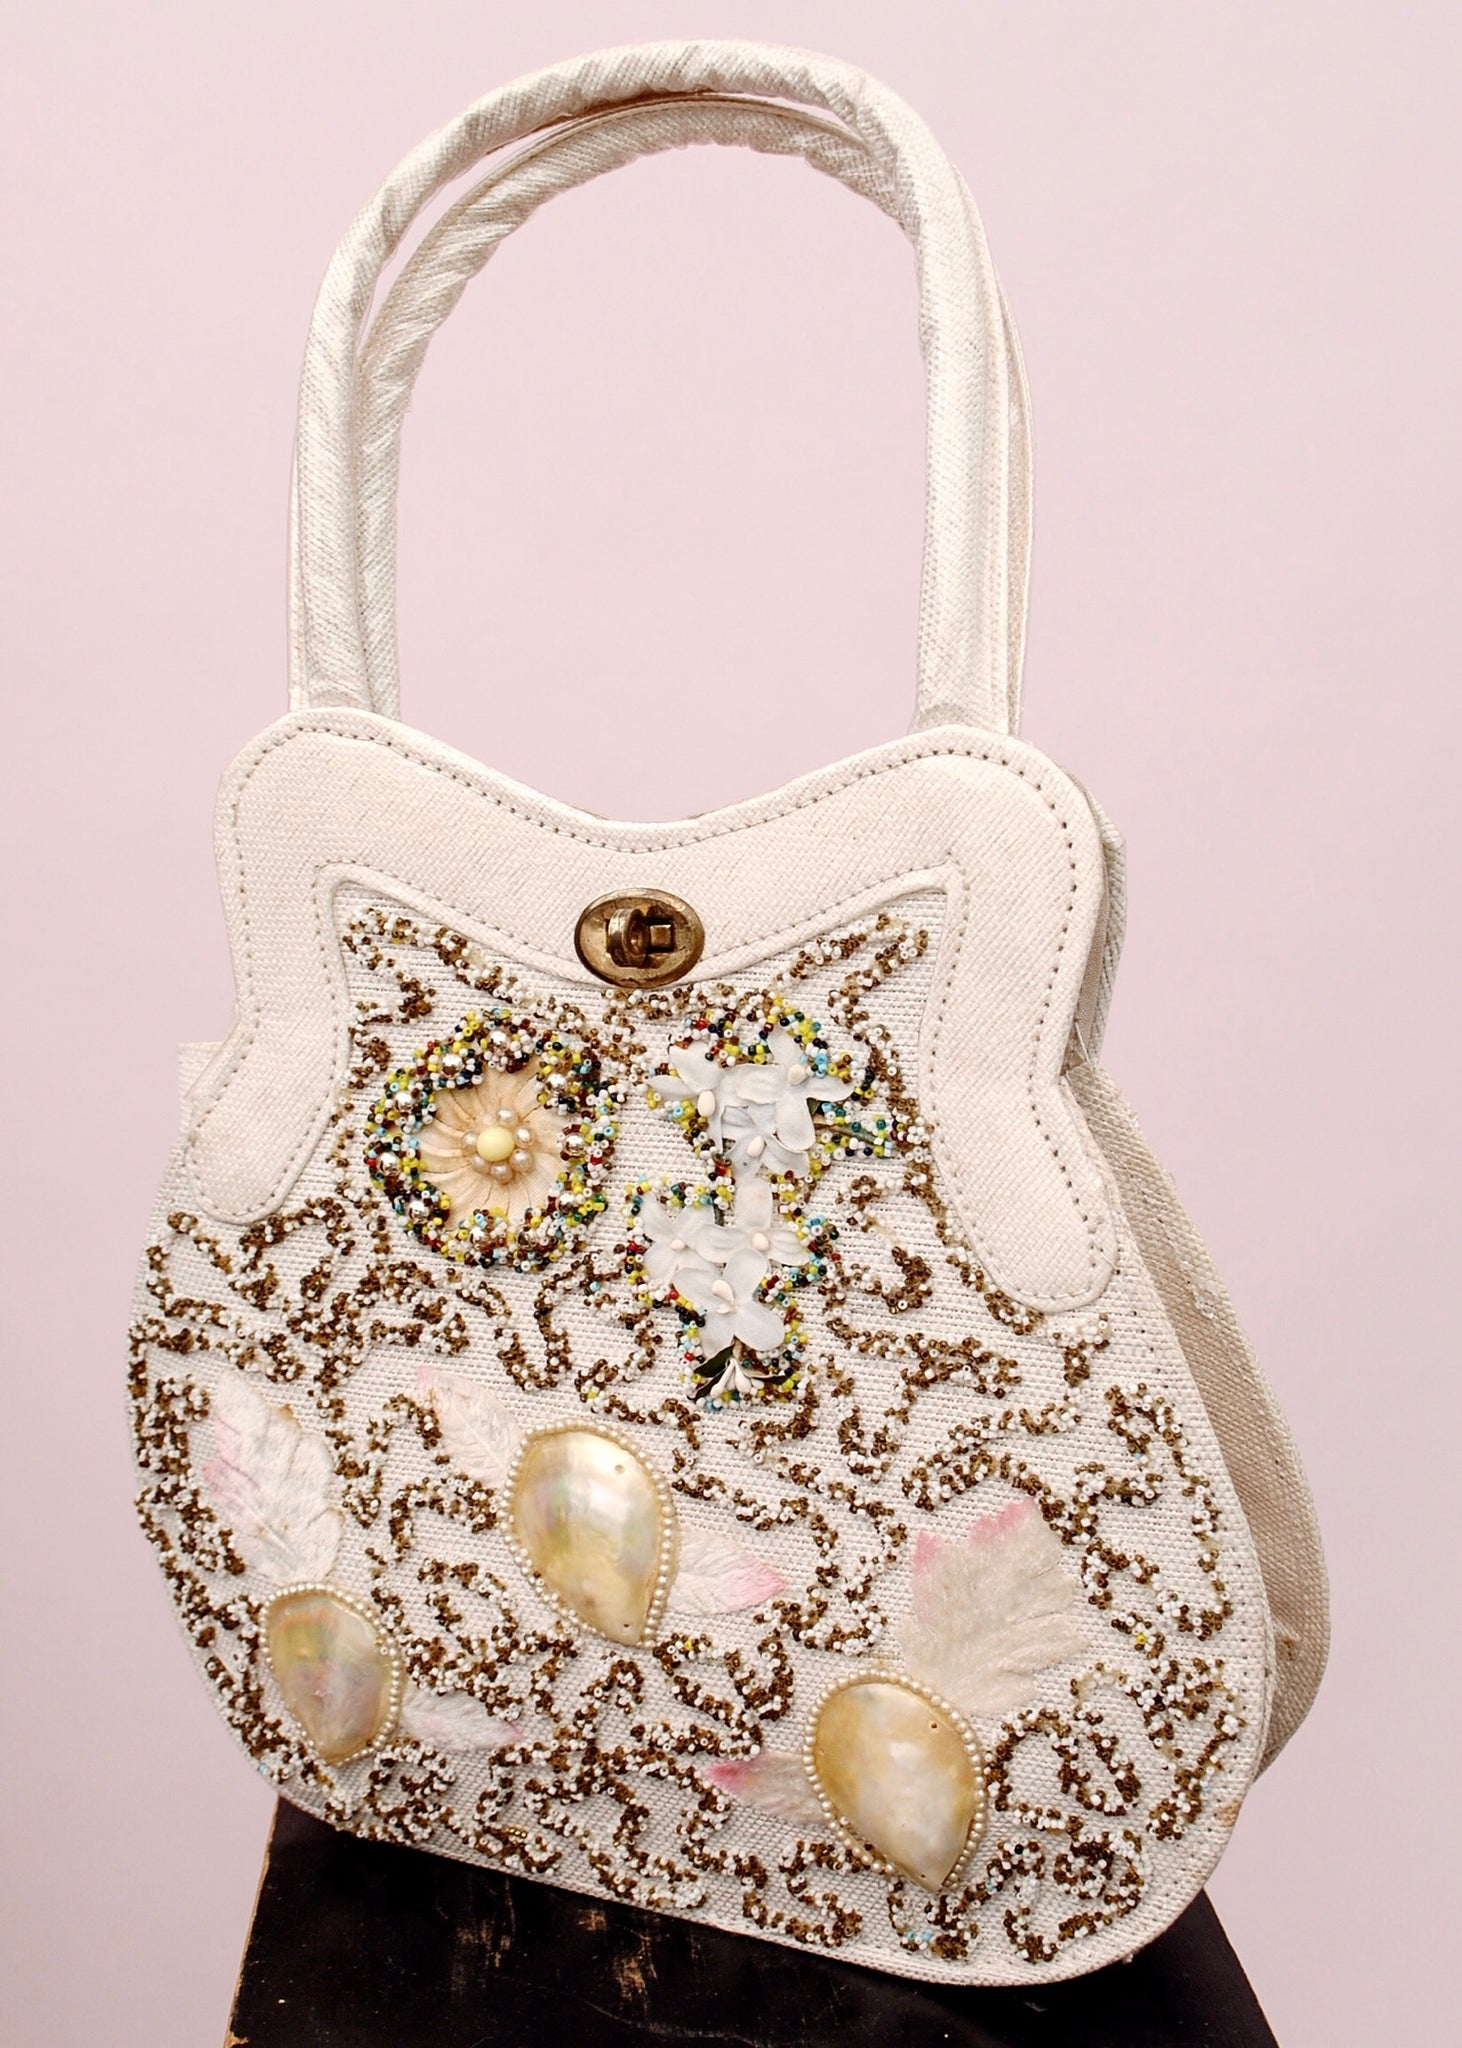 Shell decorated top handle bag From the 1950s and collage style